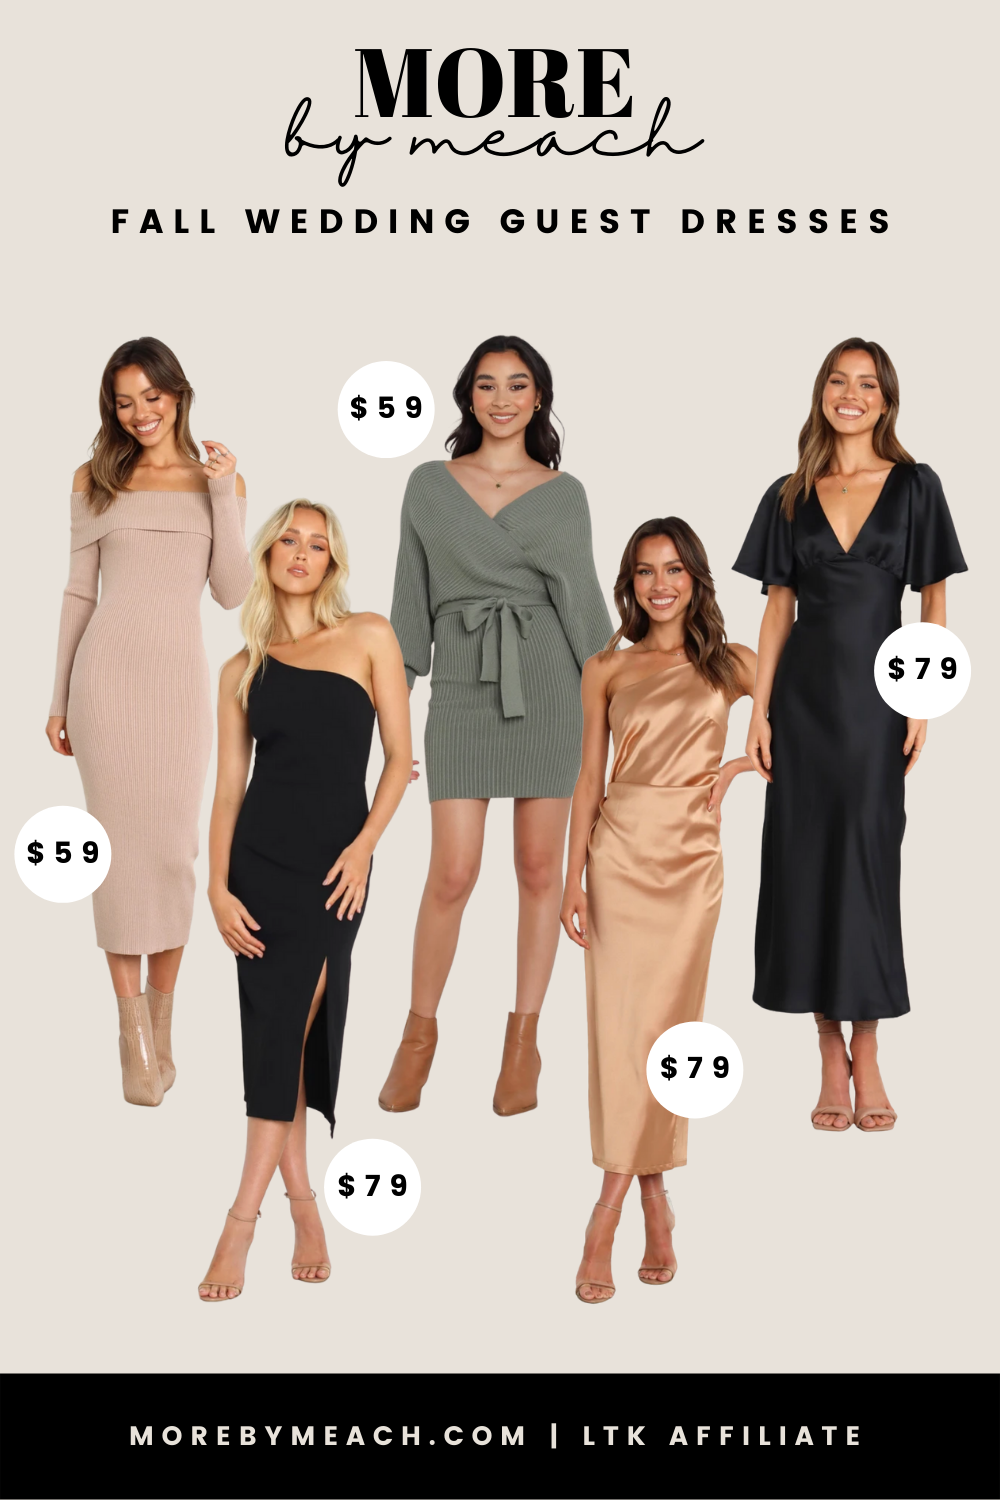 A collage of fall wedding guest dresses.